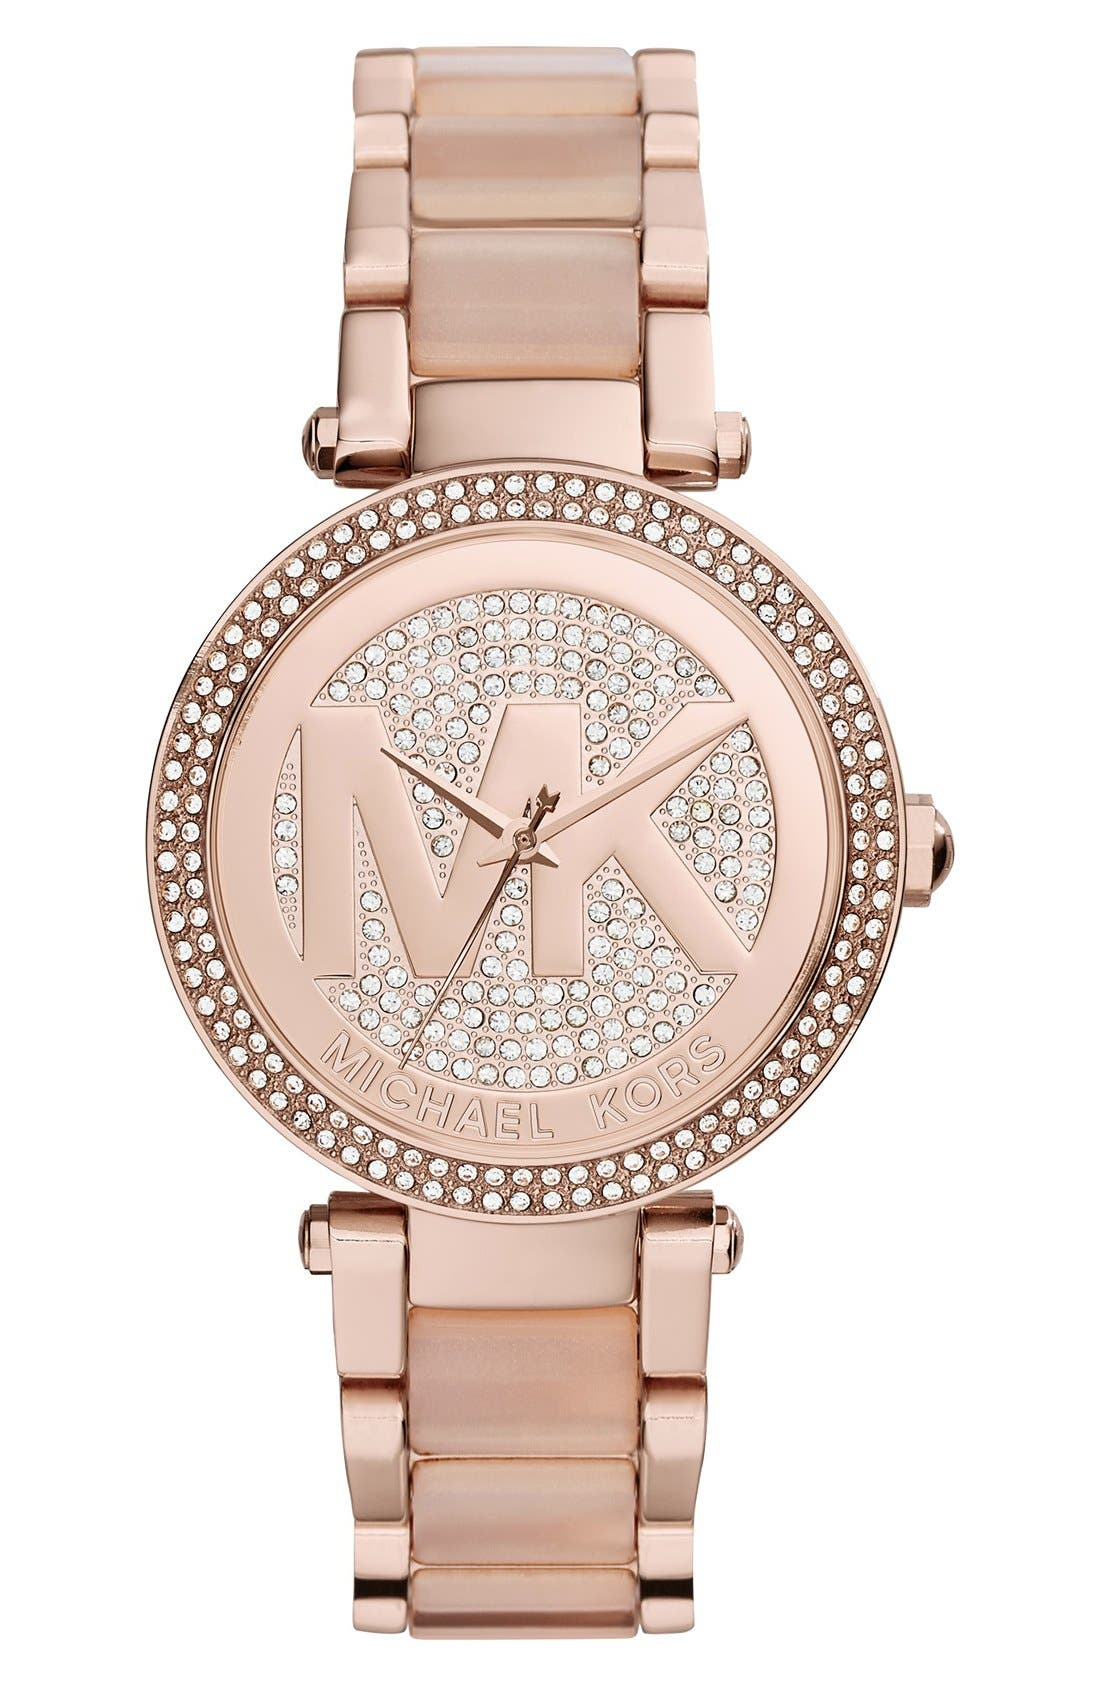 MICHAEL KORS 'Parker' Bracelet Watch, 39mm